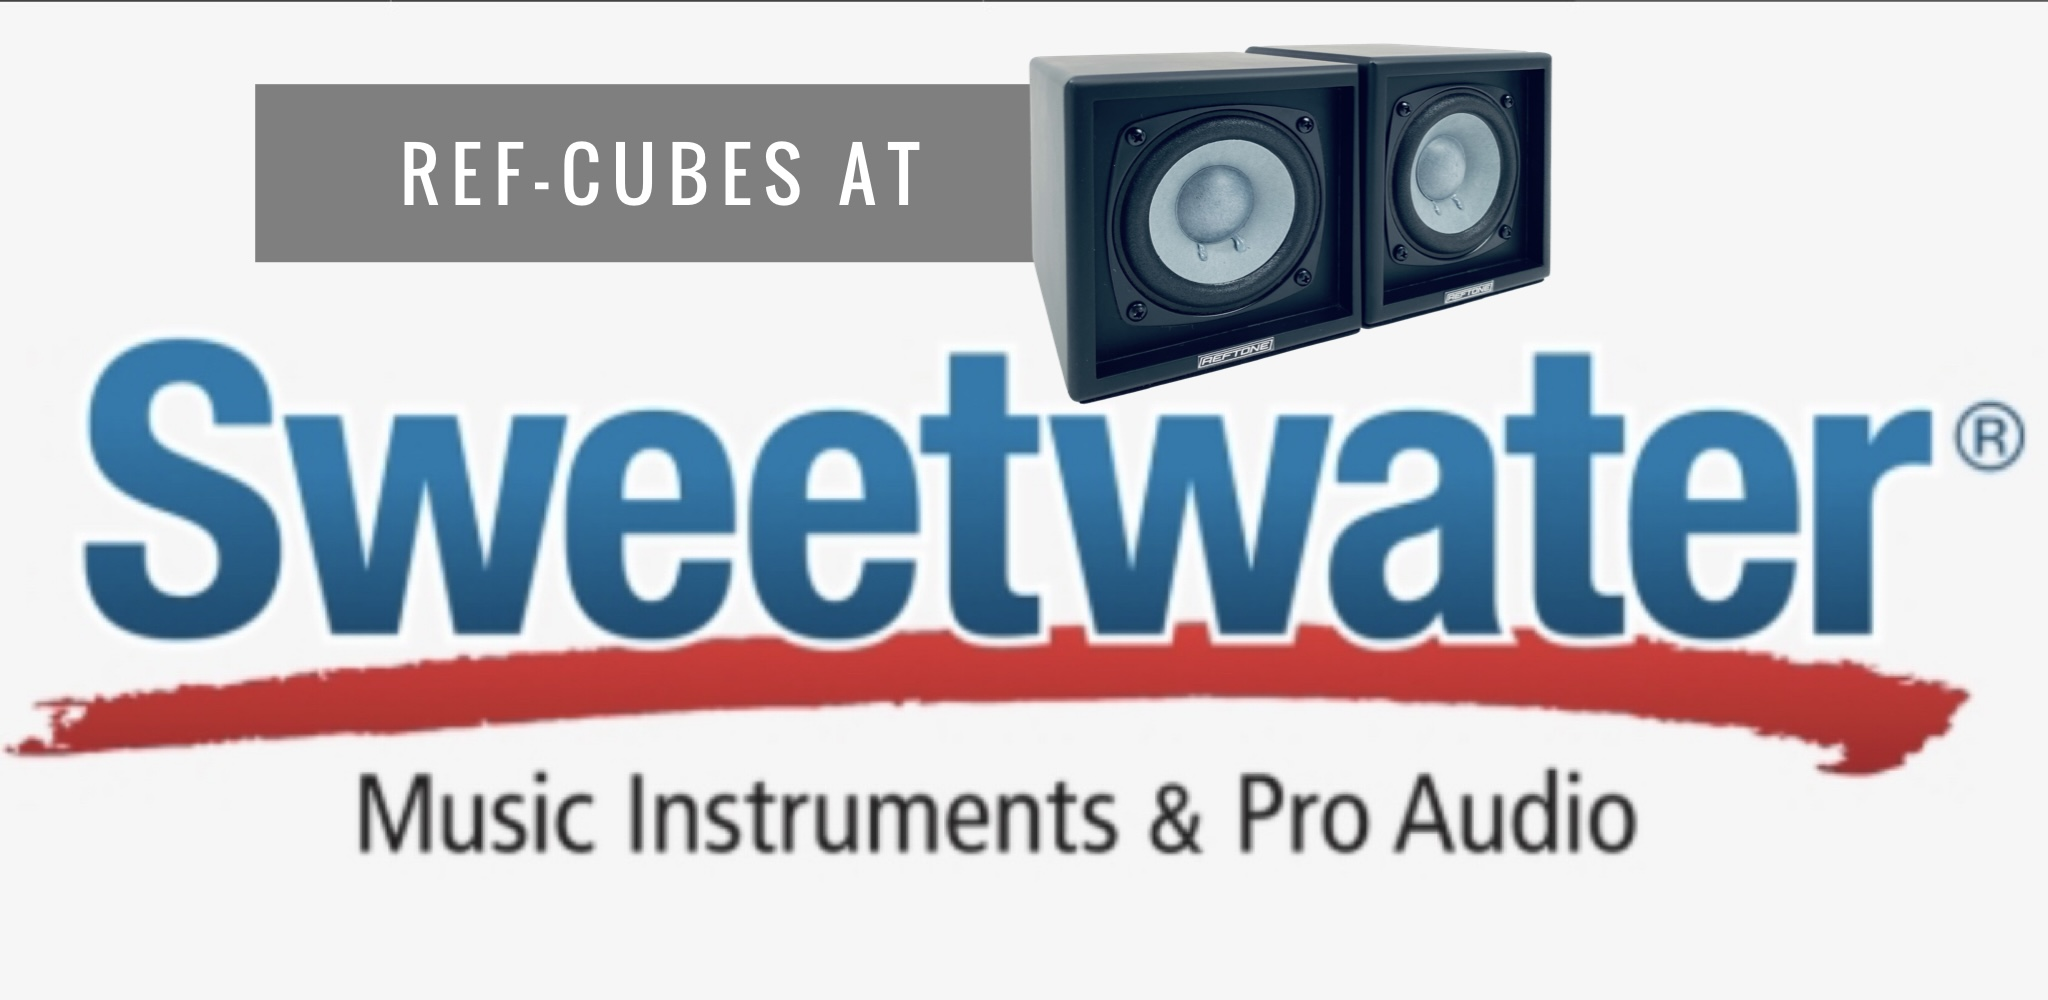 Reftone Announces New Powered Bluetooth Ref-Cubes & Availability at Sweetwater